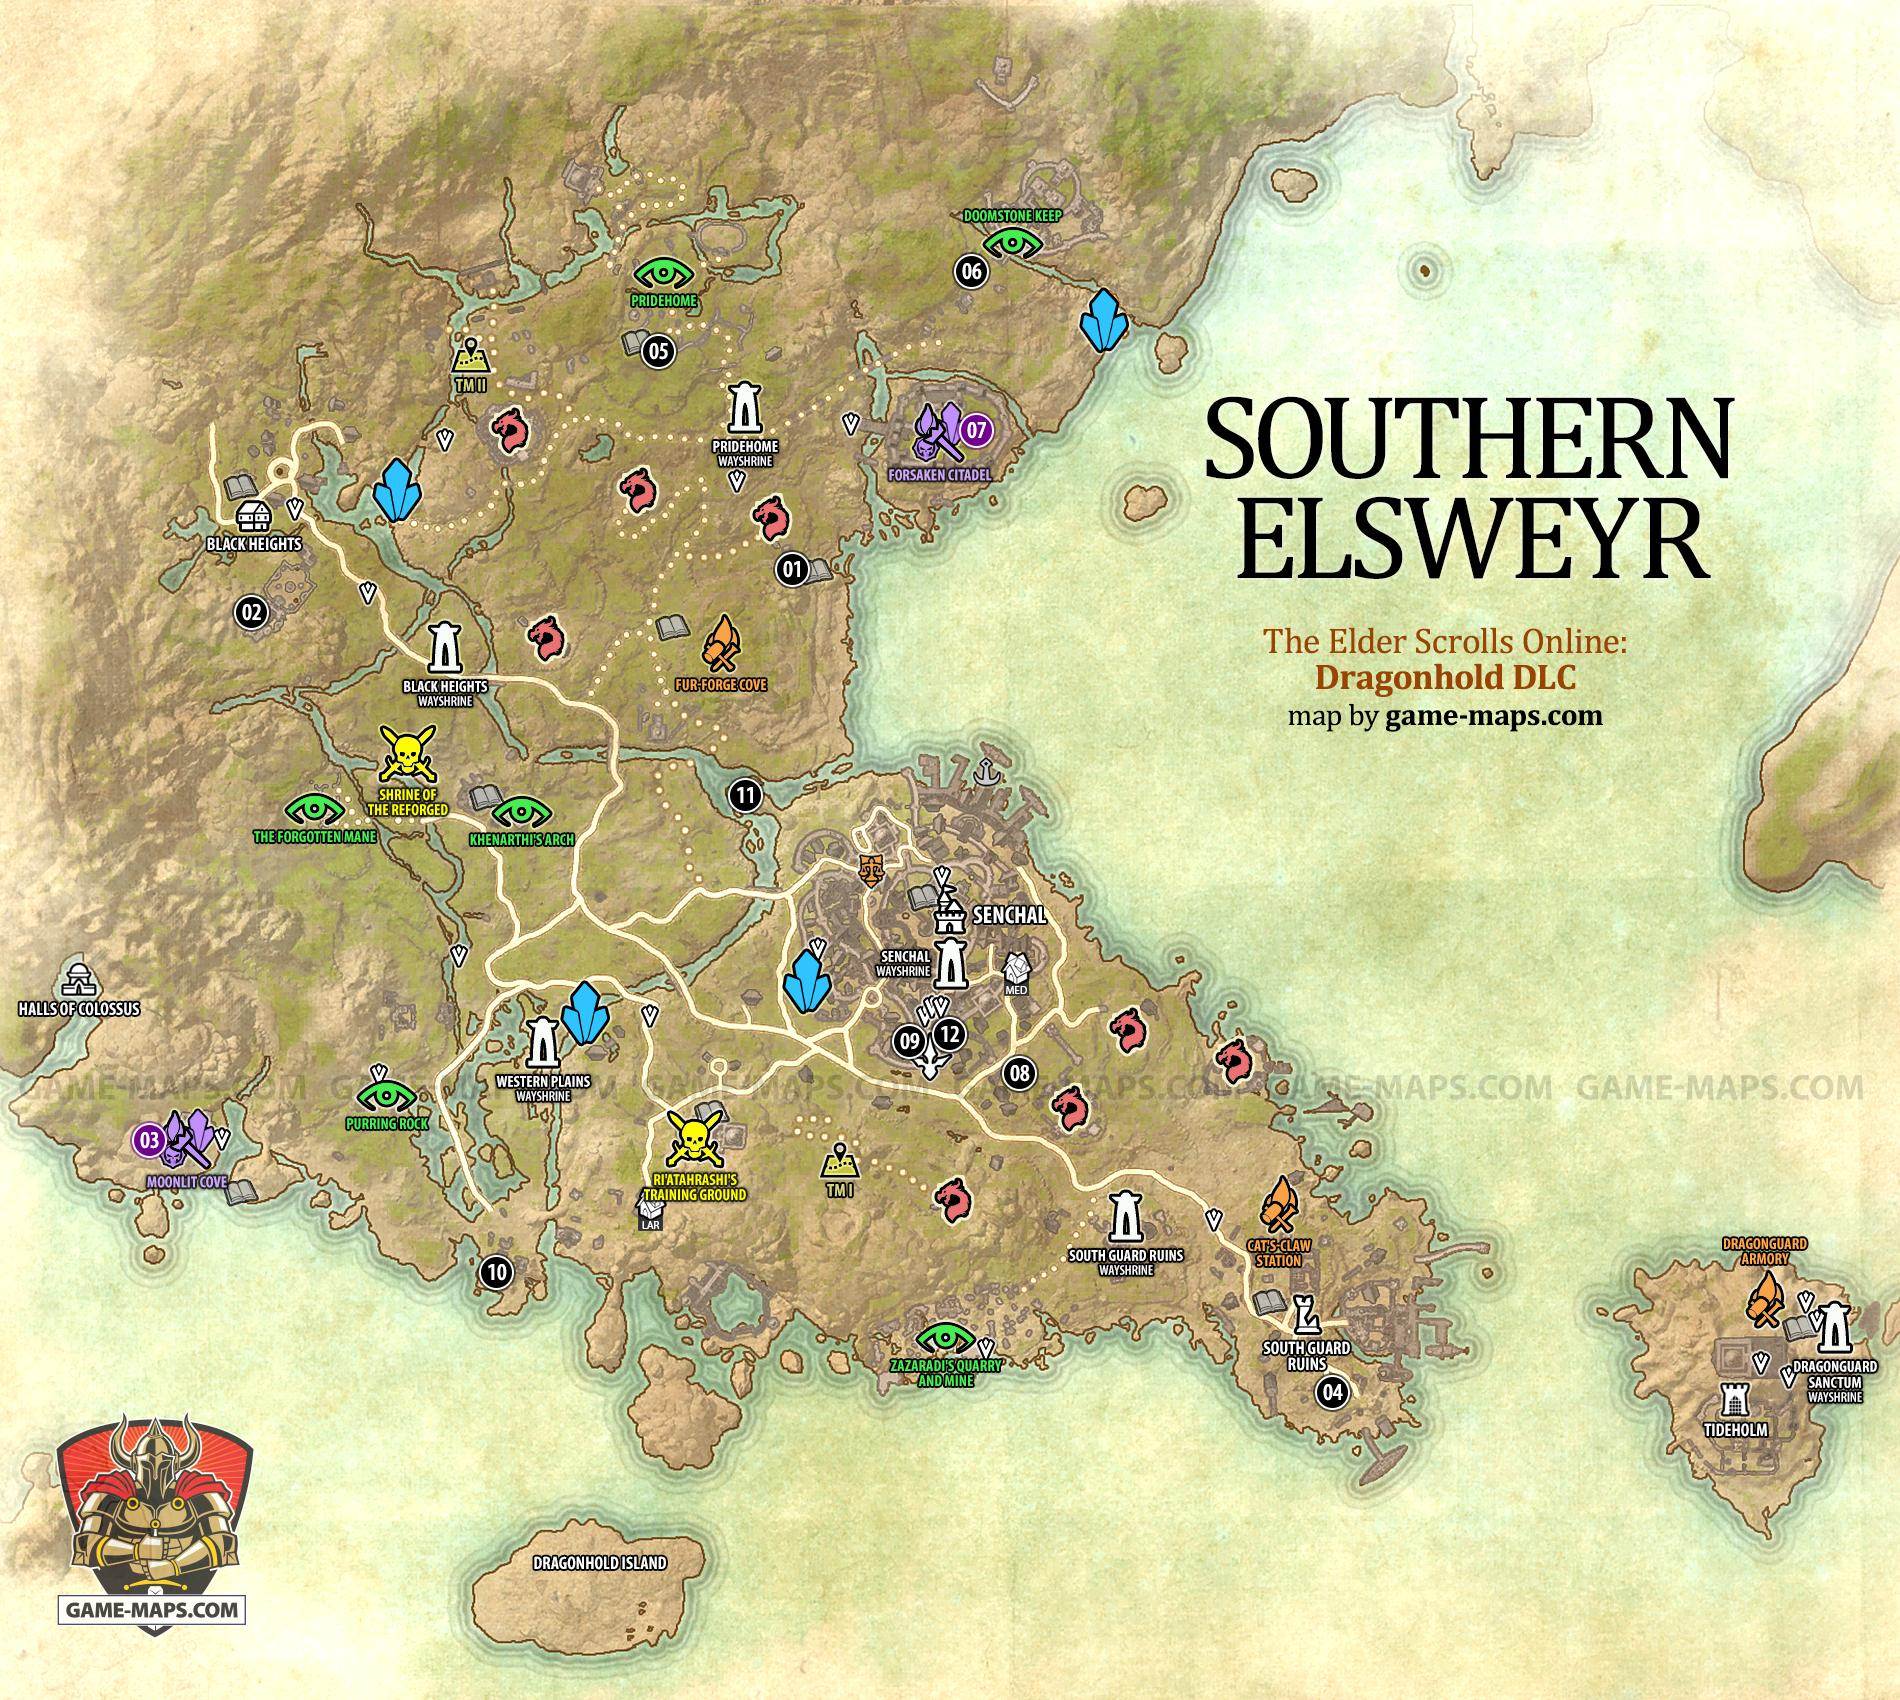 Southern Elsweyr Map ESO - The Elder Scrolls Online | game ...